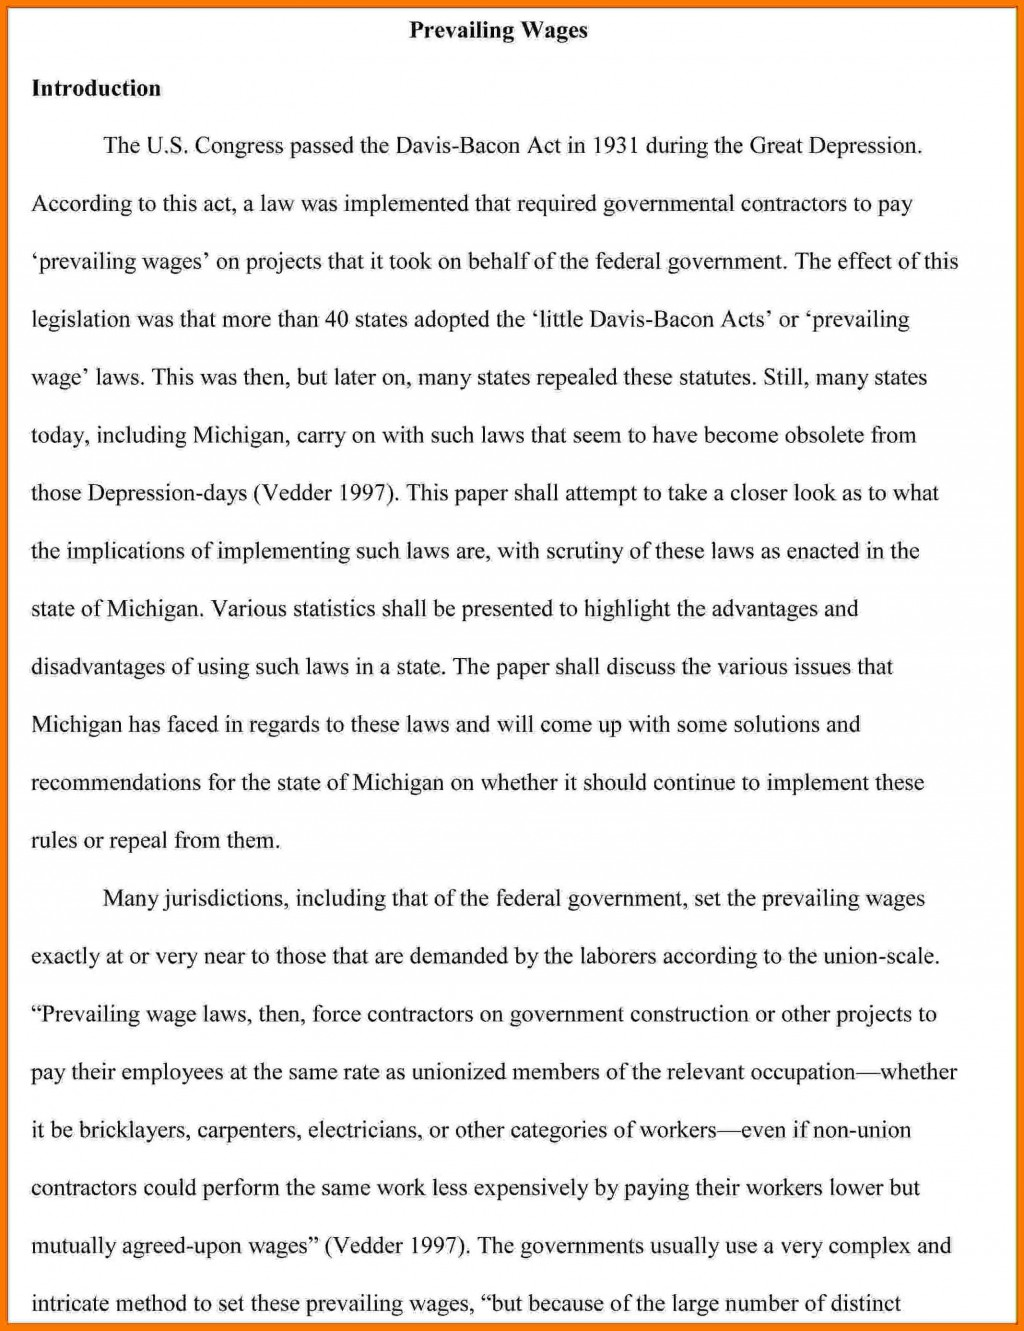 005 Collection Of Solutions Introductionpa Paper Great Research How To Writen For Fearsome Write An Introduction A Apa Large